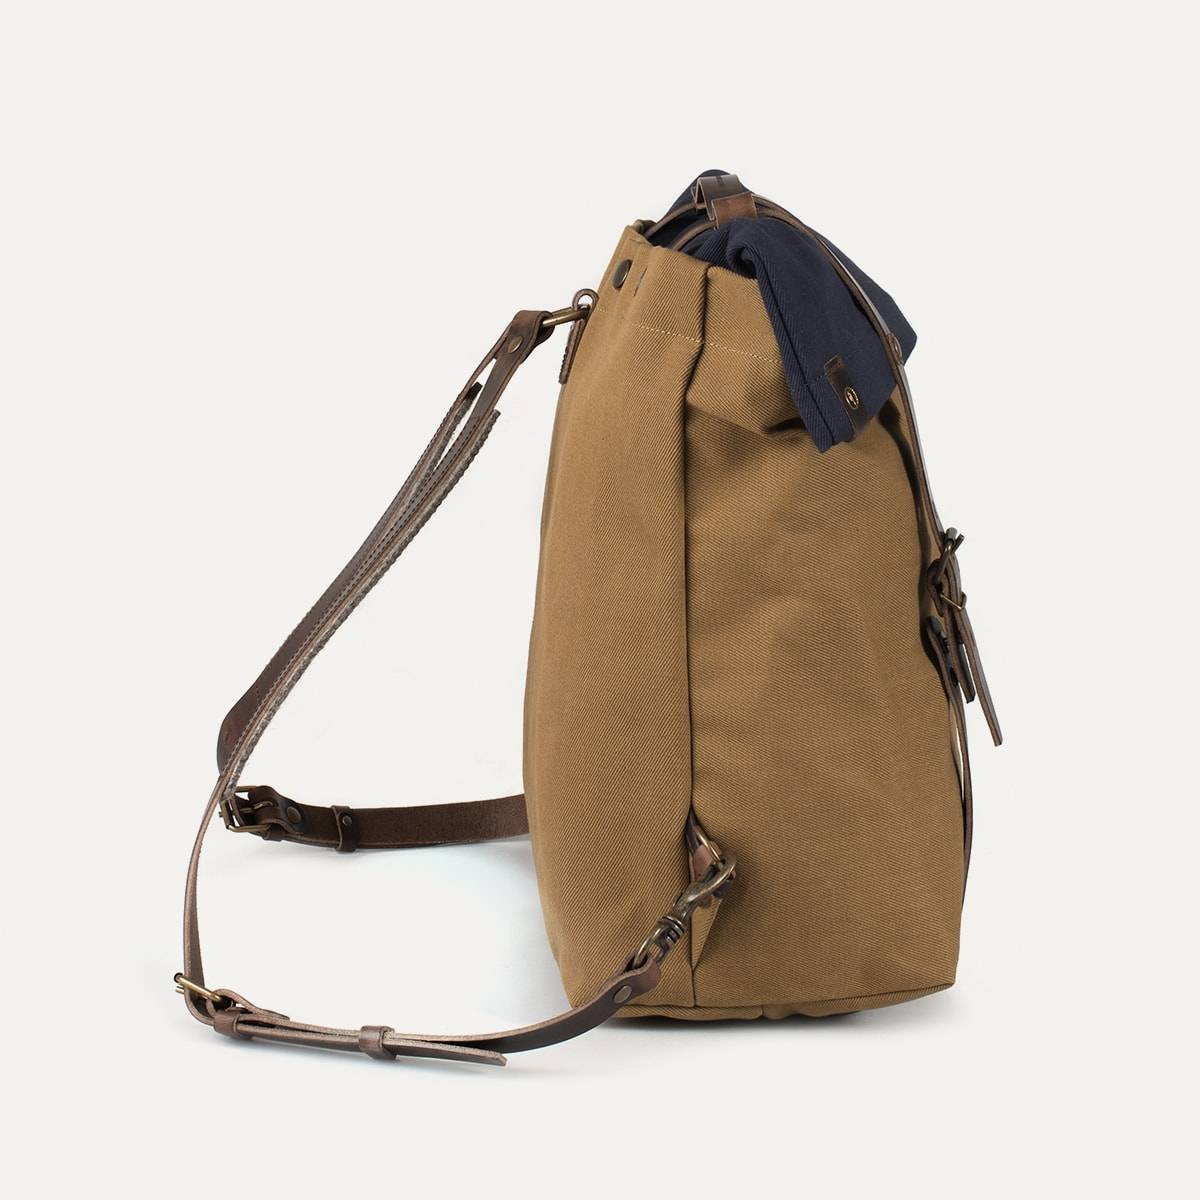 Blitz Motorcycles Scout Backpack - Navy/Camel (image n°3)